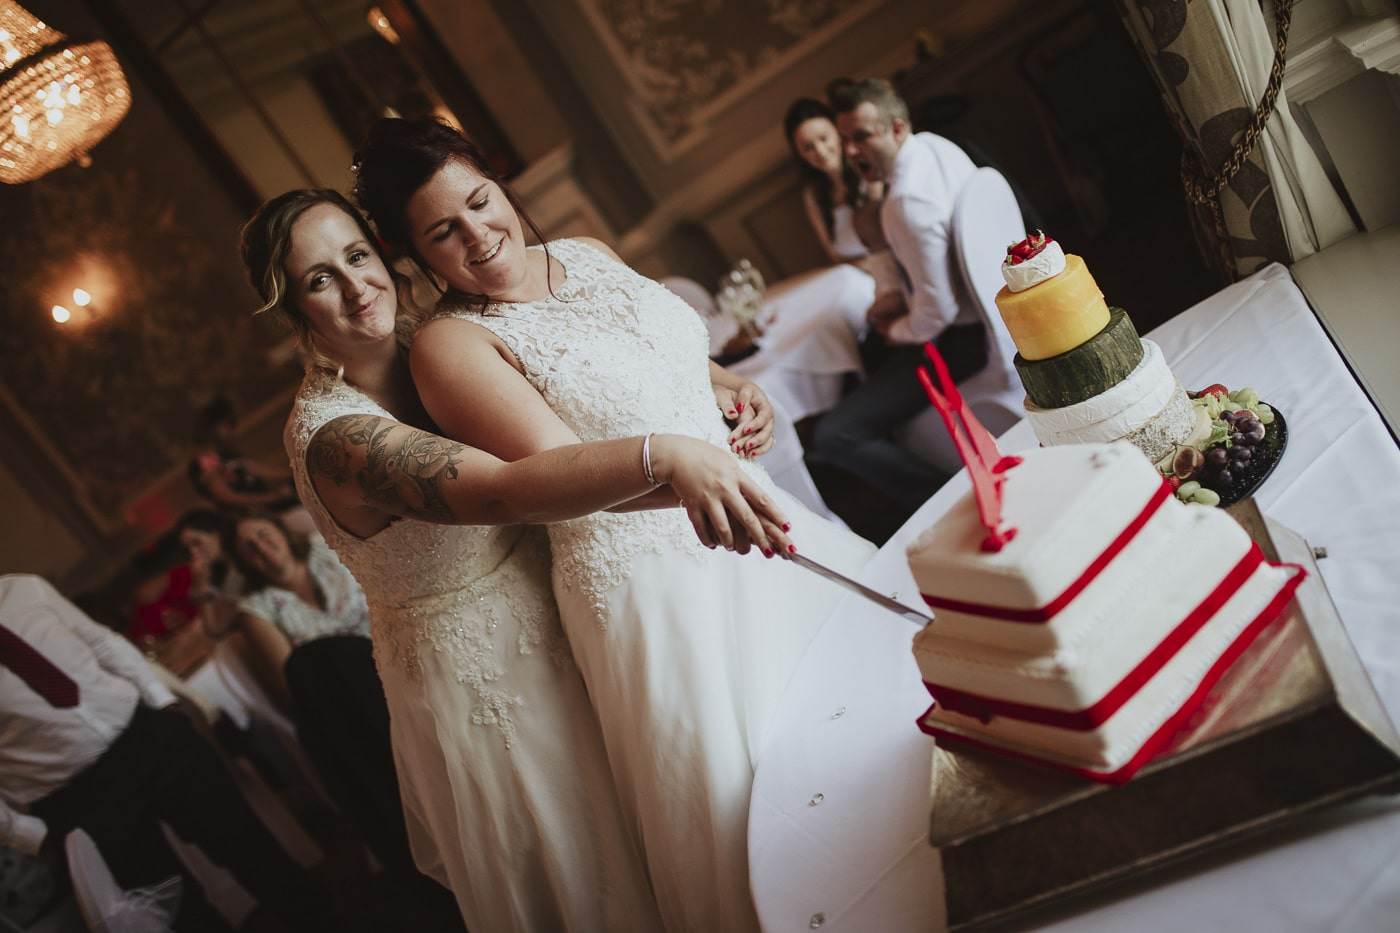 Two brides cutting the cake for wedding photography by Joshua Wyborn